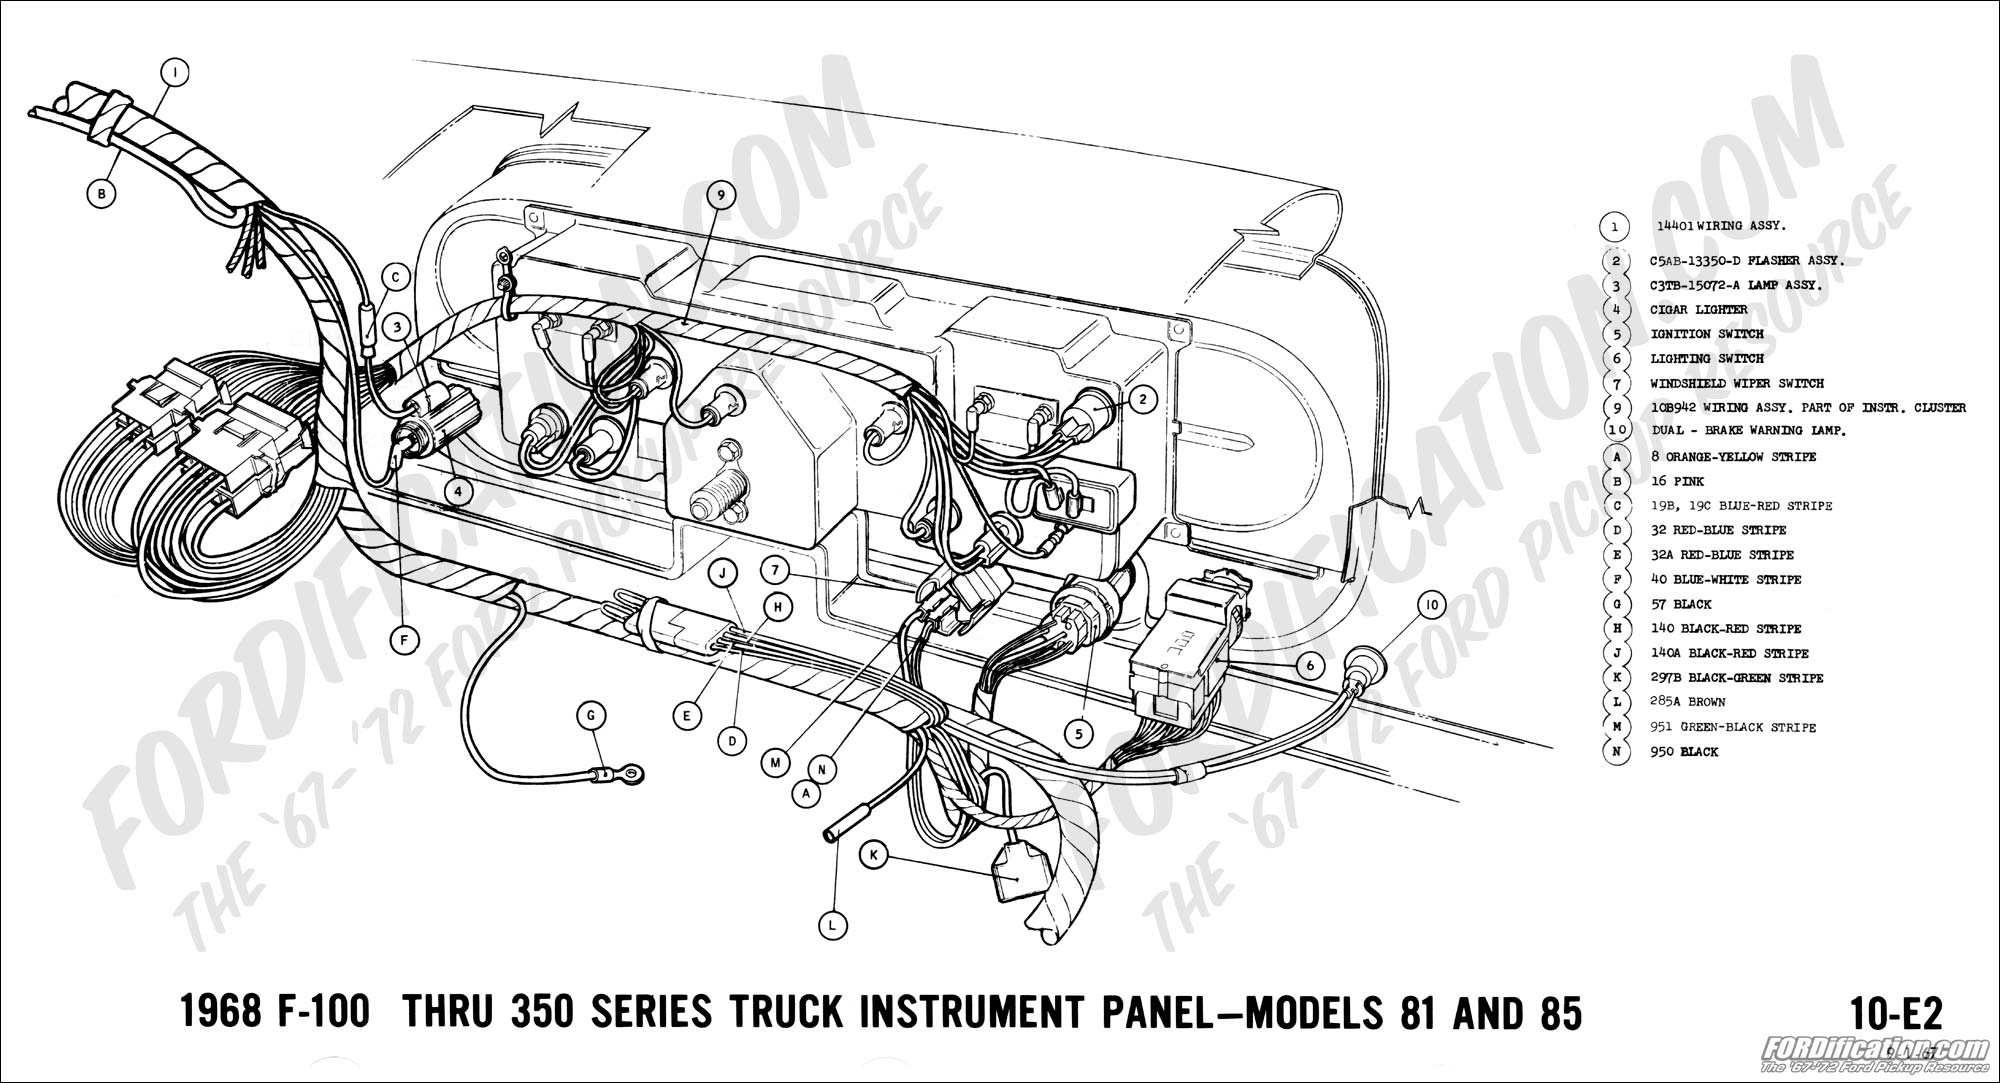 hight resolution of 1967 f100 heater wiring diagram wiring library 1990 f250 truck wiring diagram 1968 ford f100 instrument cluster wiring diagram